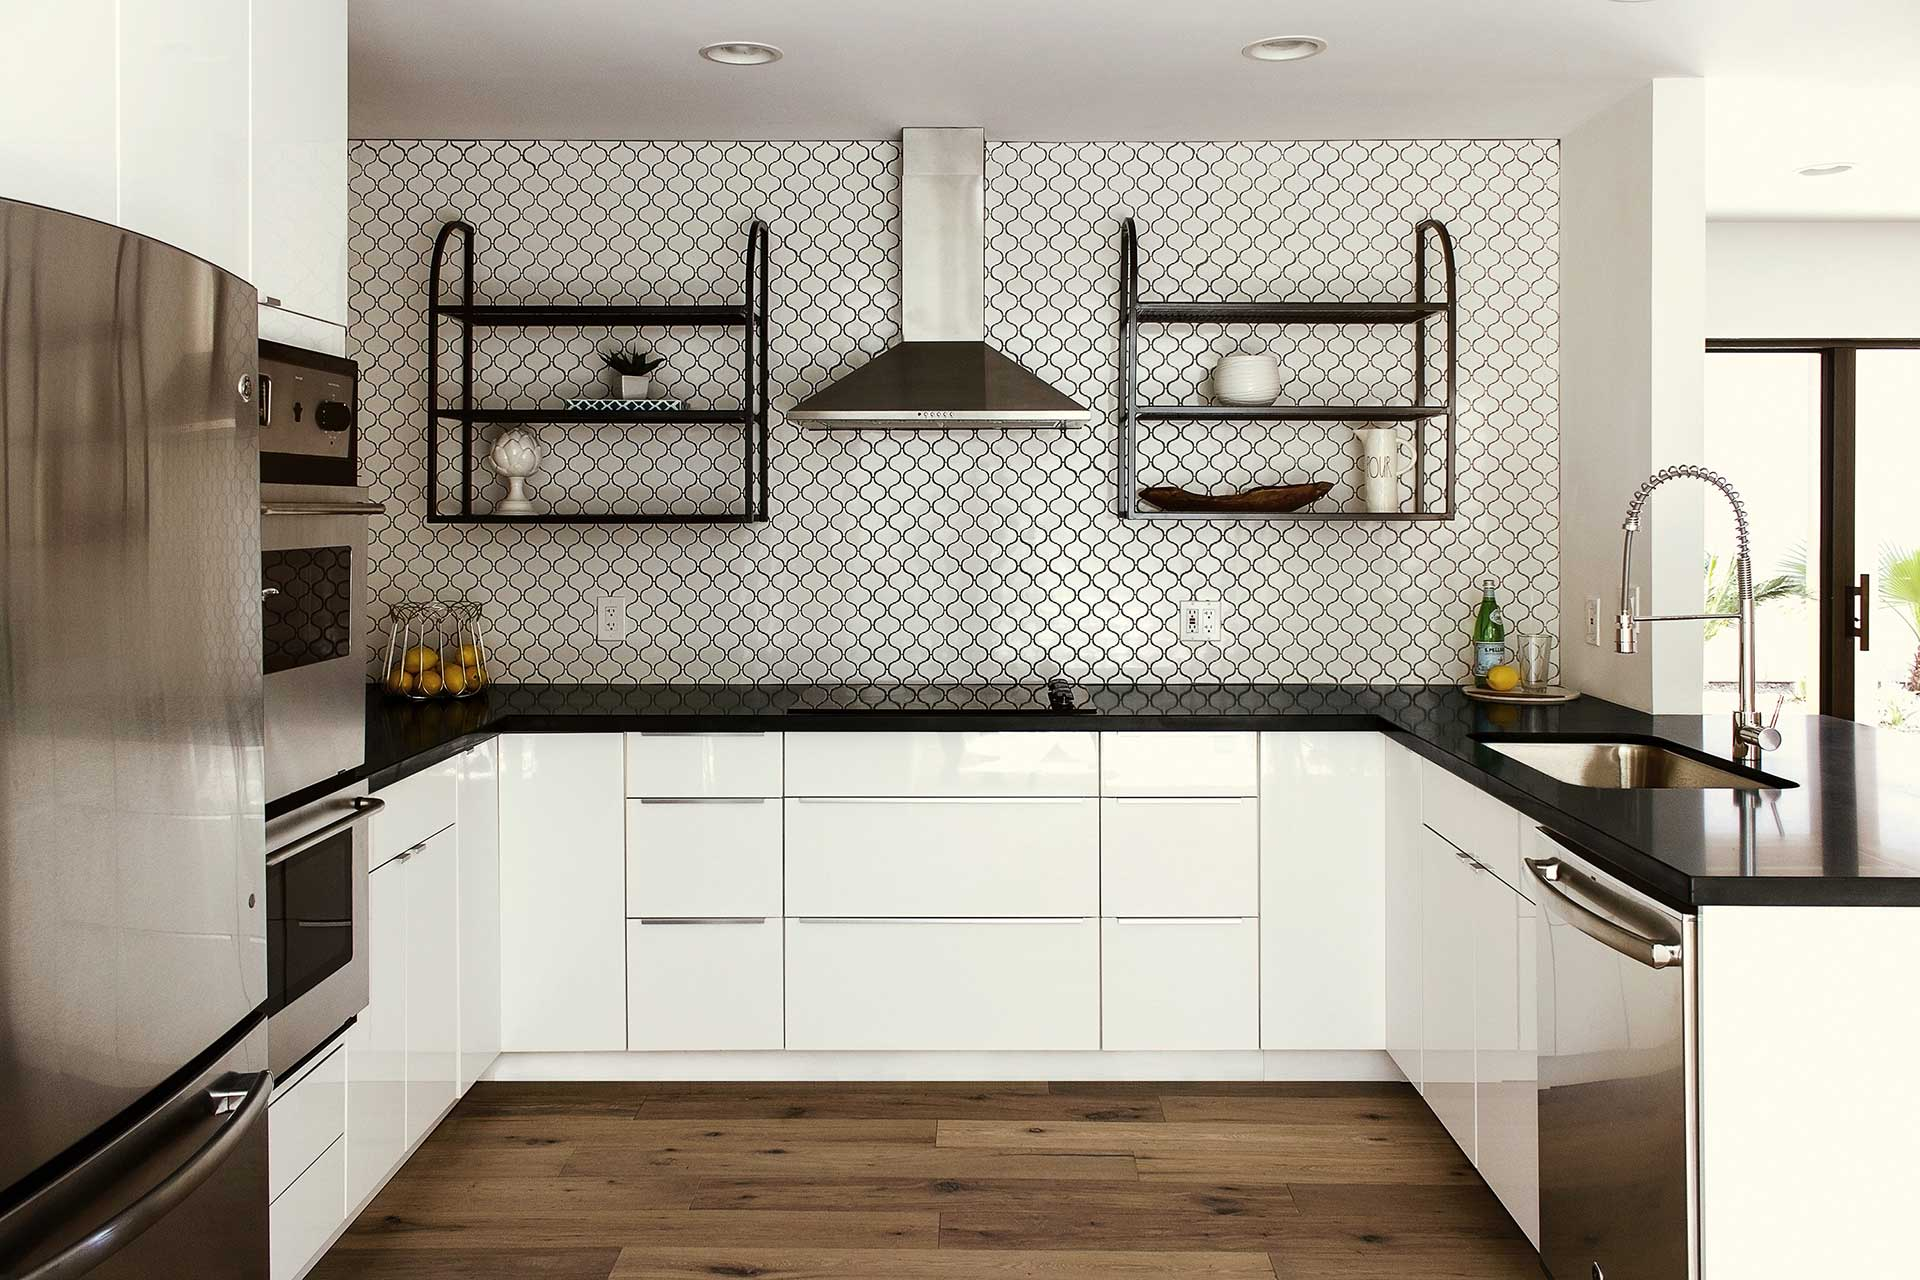 Marlette Avenue – Kitchen Shelves, Backsplash